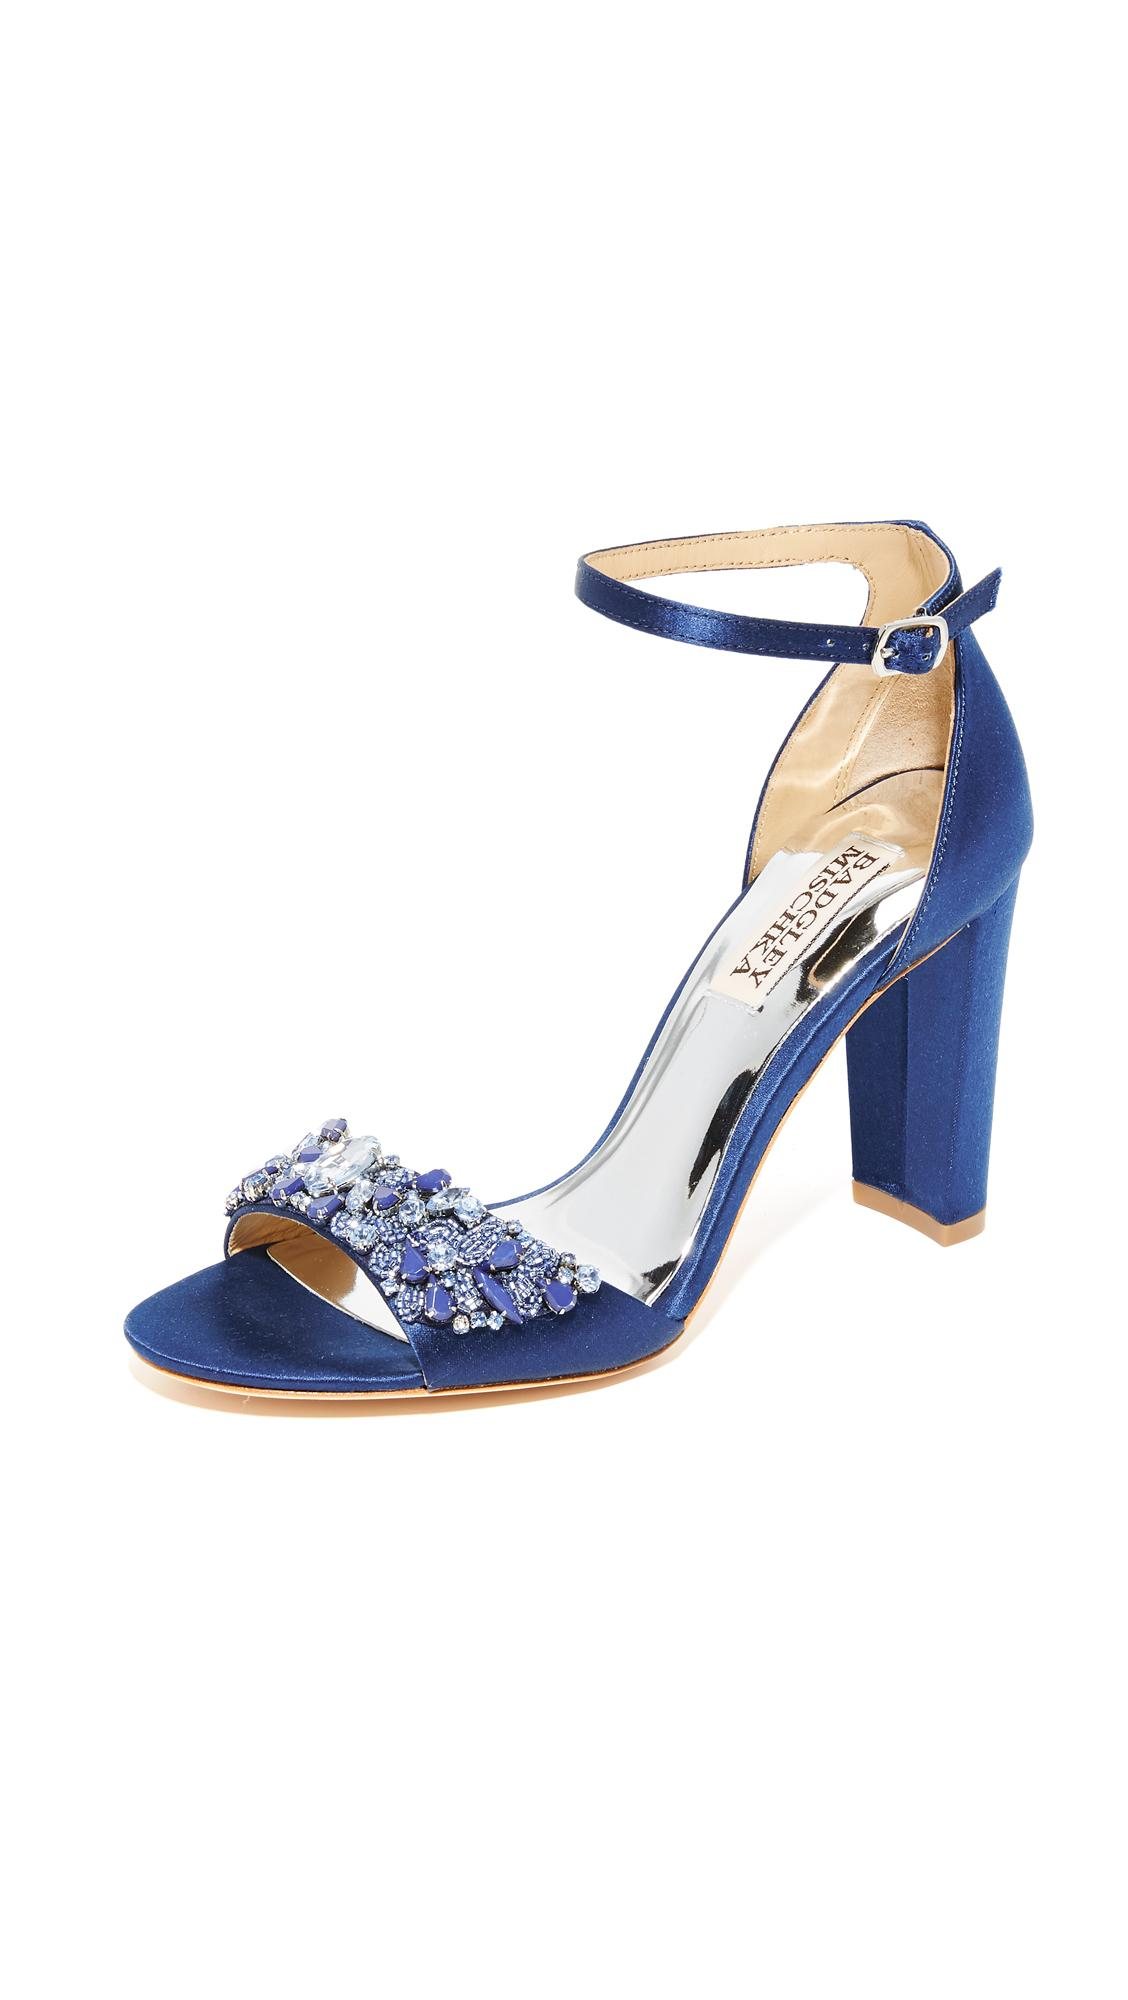 5e577f58984f Lyst - Badgley Mischka Barby Sandals in Blue